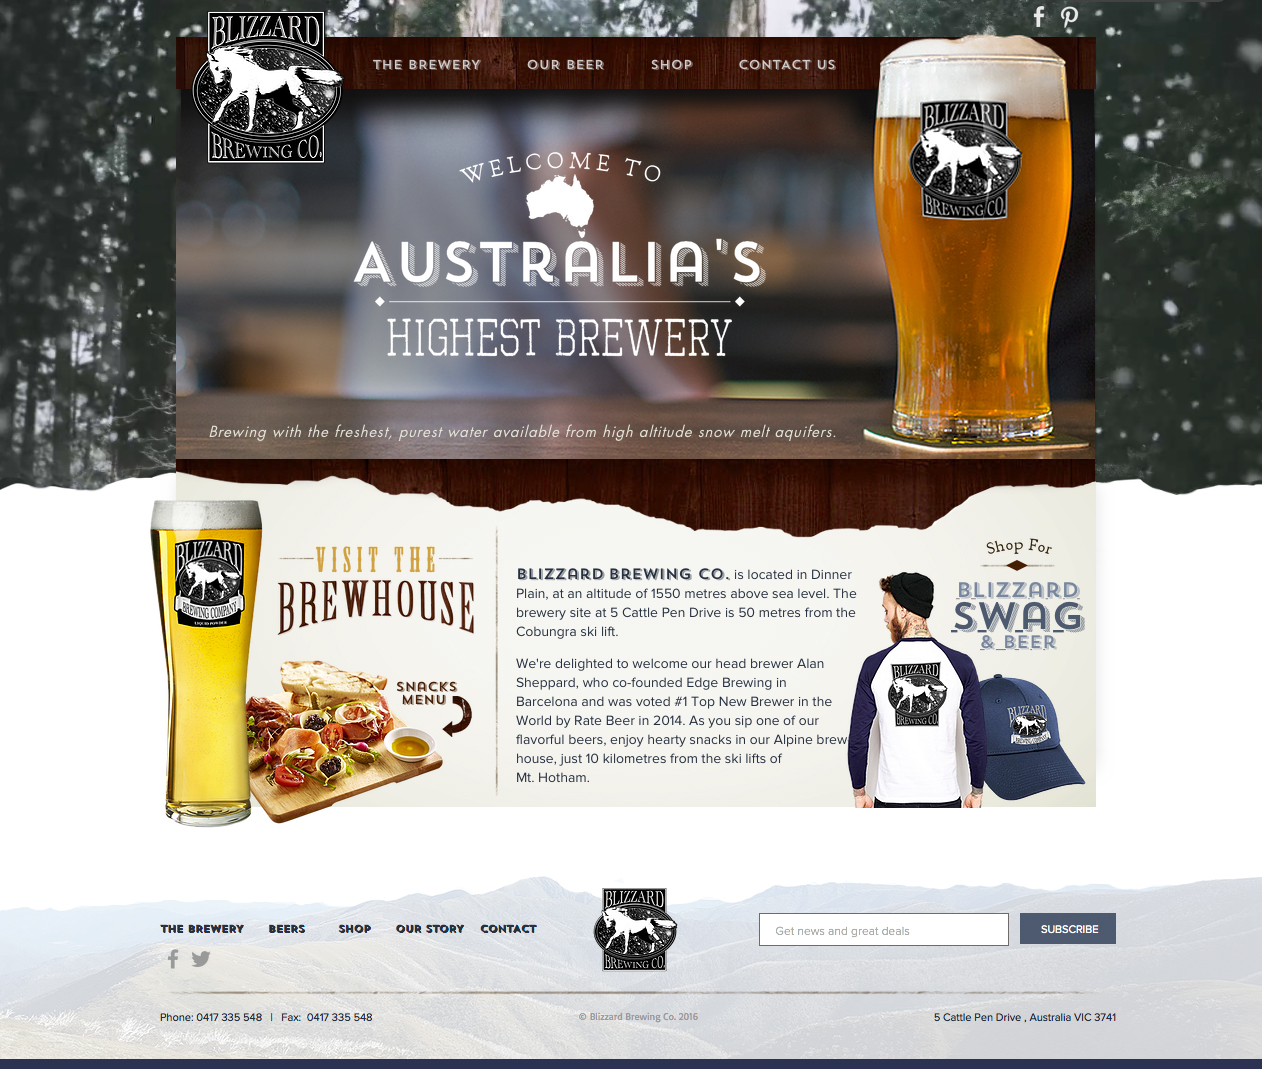 Blizzard Brewing Co